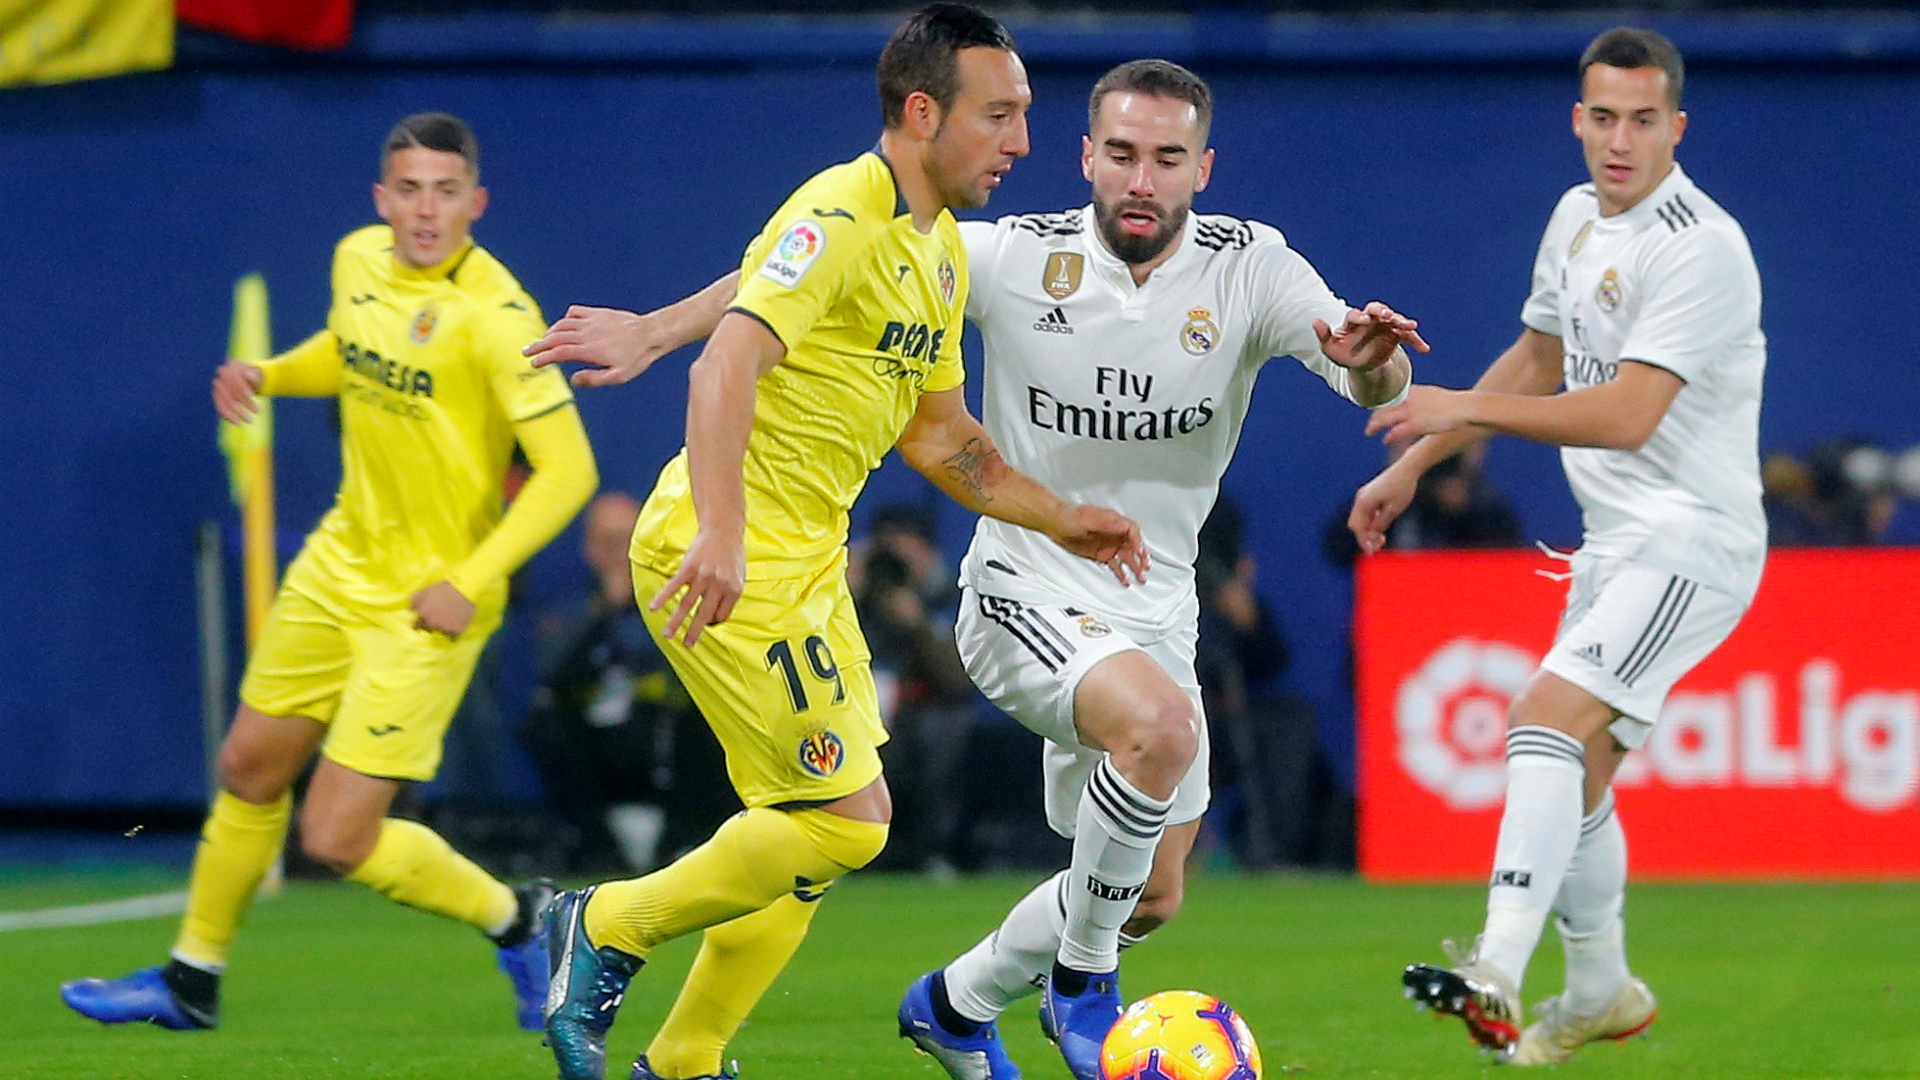 Betting Tips For Today Little To Separate Eibar And Villarreal In Sunday s Early Kick off Goal com